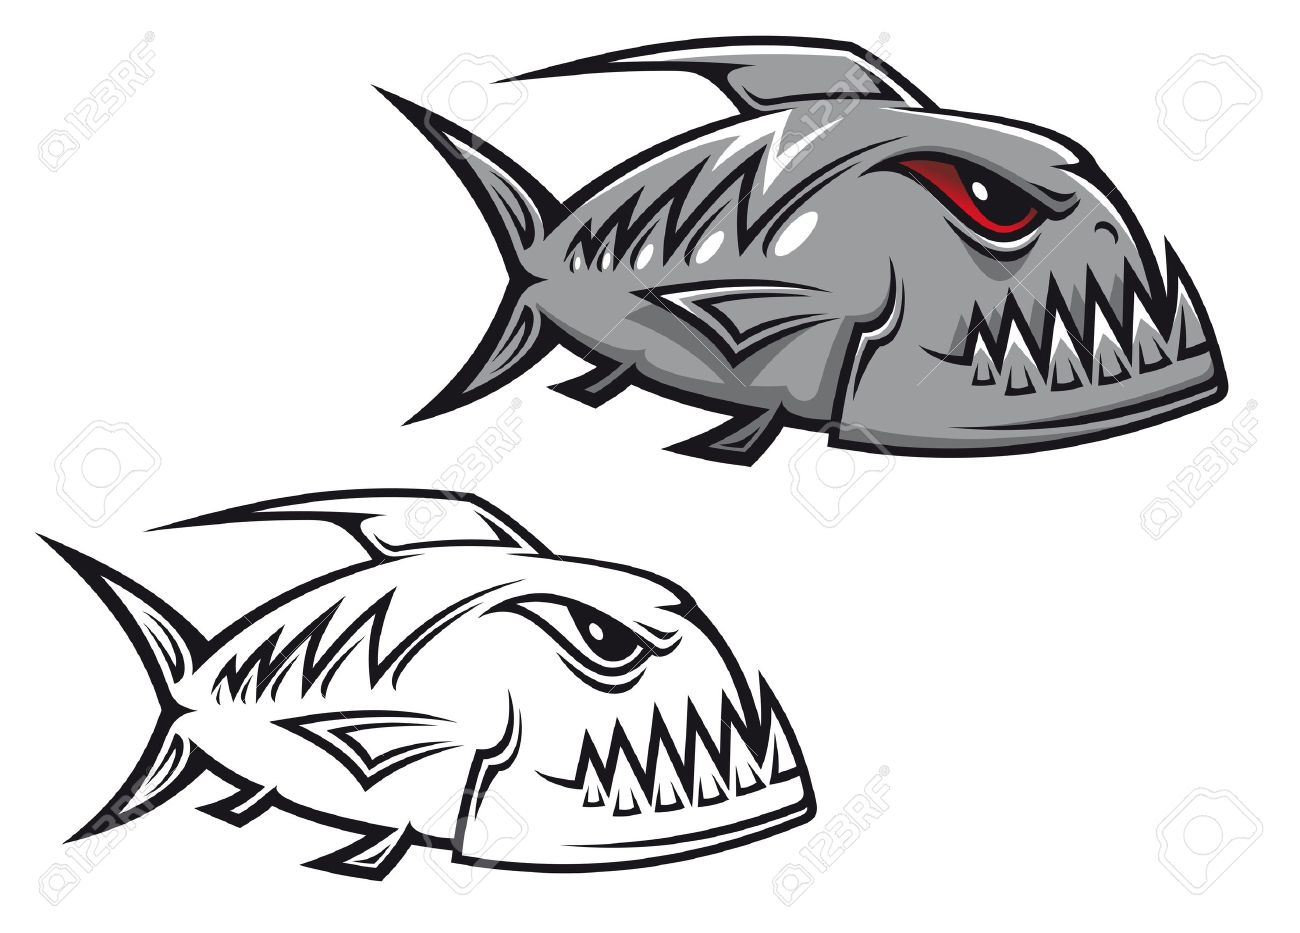 Danger piranha fish in cartoon style isolated on white background Stock Vector - 12306892